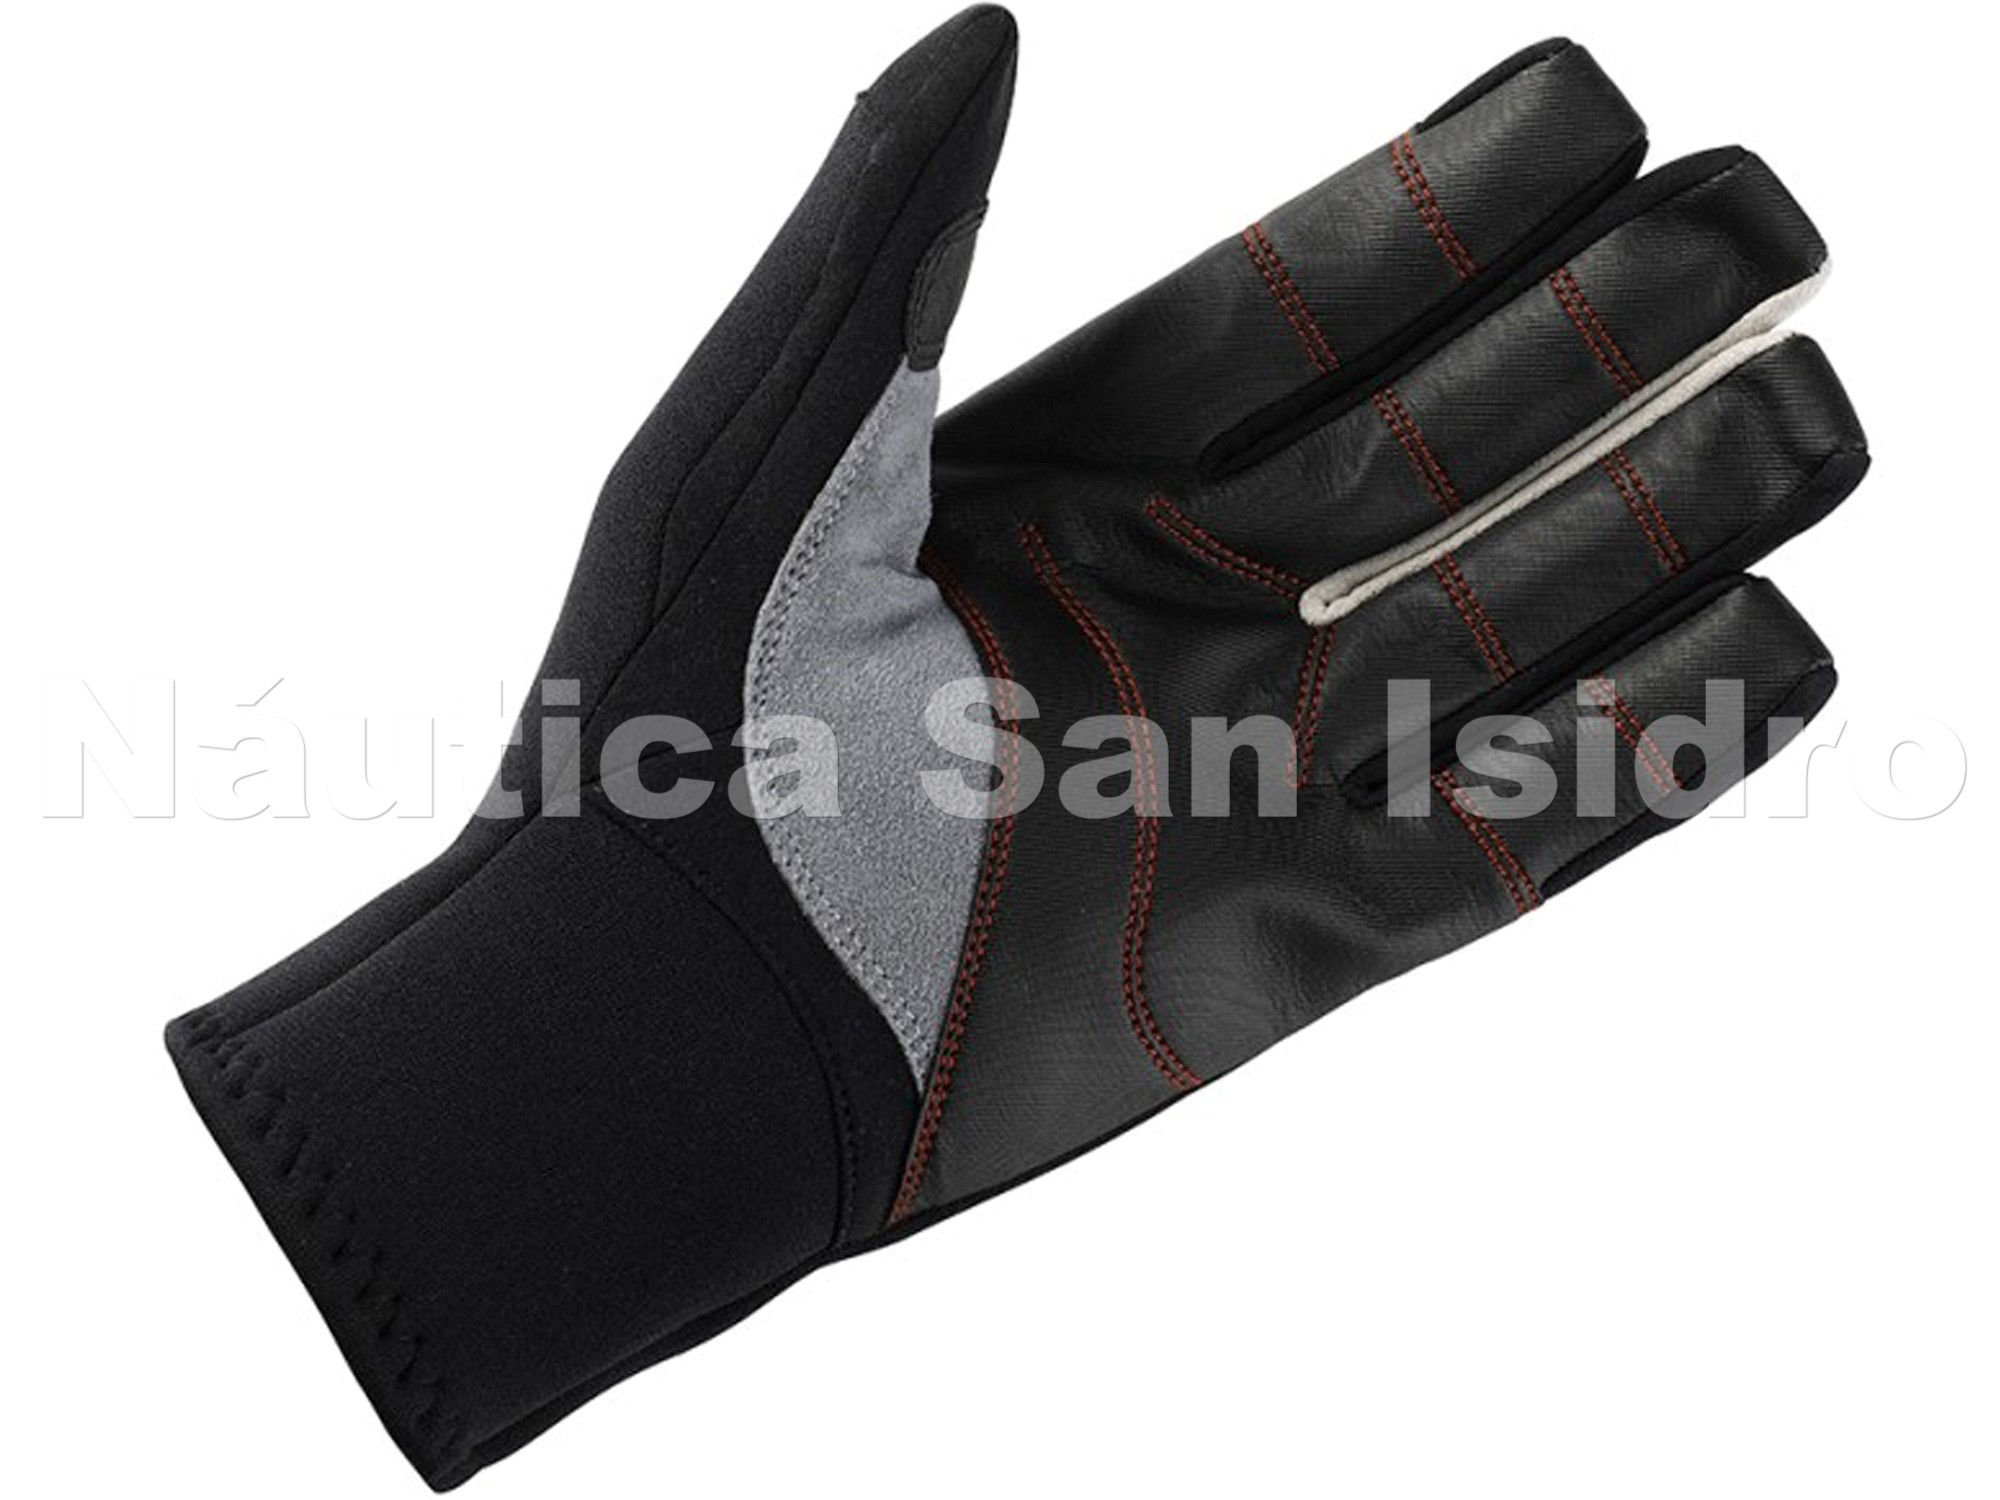 guantes-gill-neoprene-3seasons-2.jpg